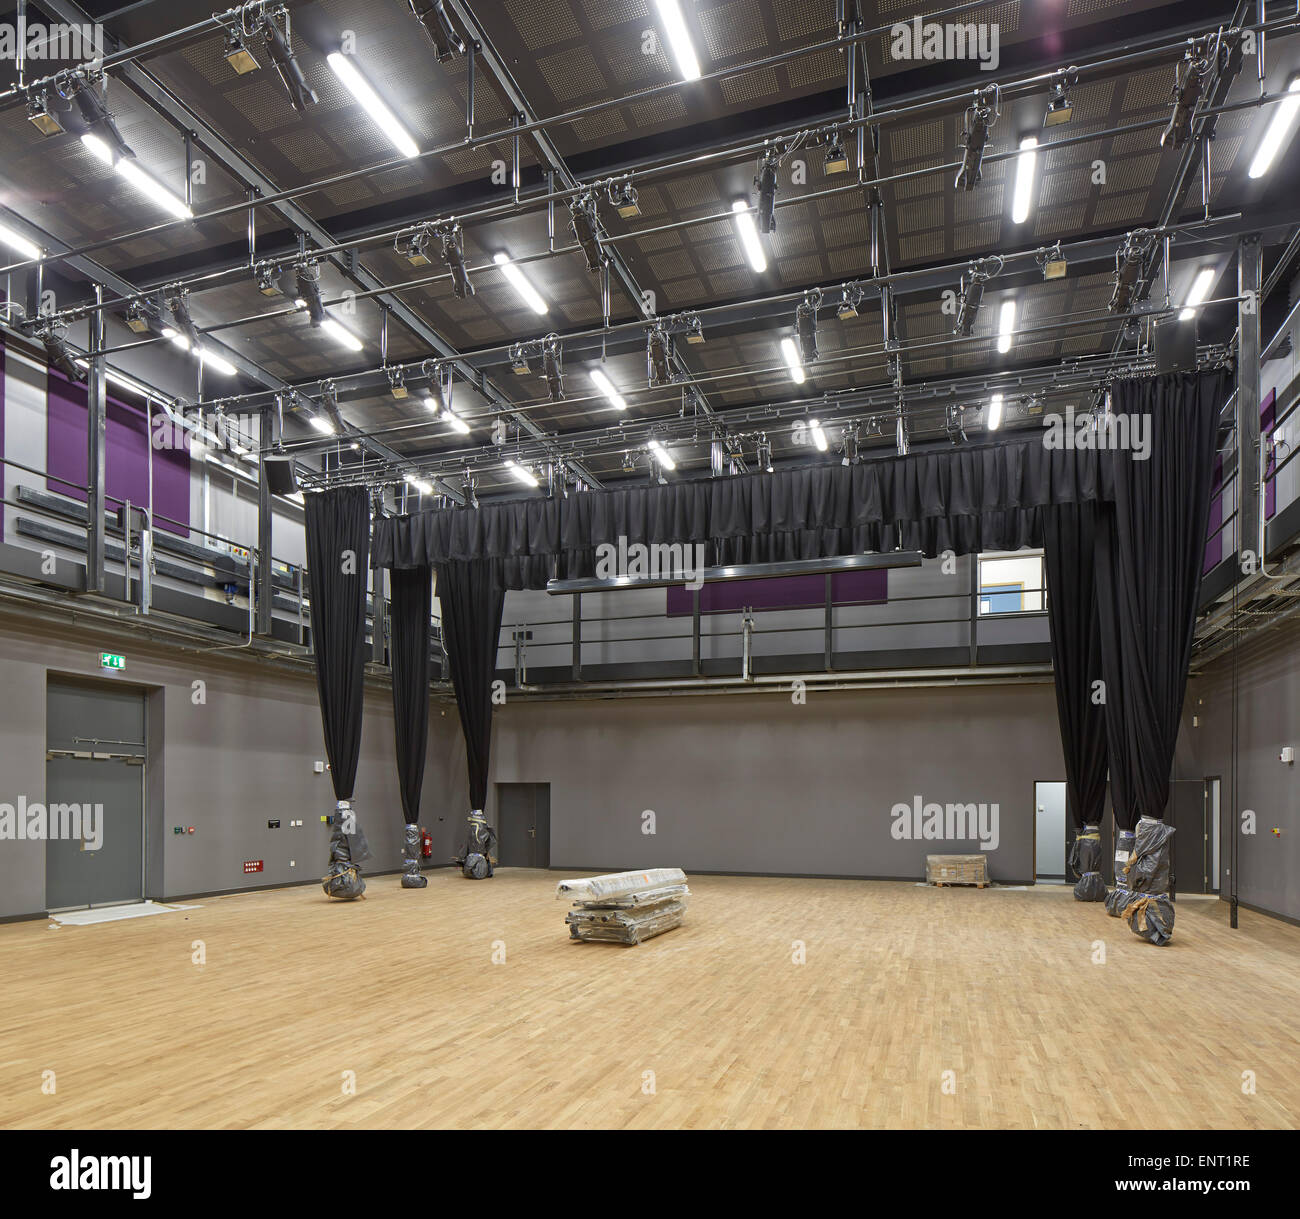 Multi-functional theatre space. Regent High School, London, United Kingdom. Architect: Walters and Cohen Ltd, 2015. - Stock Image